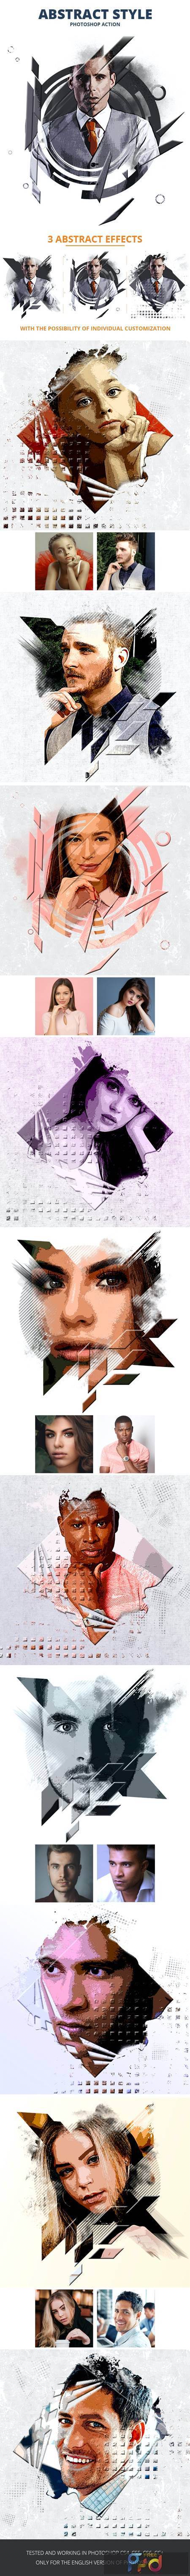 Abstract Style Photoshop Action 26541808 1